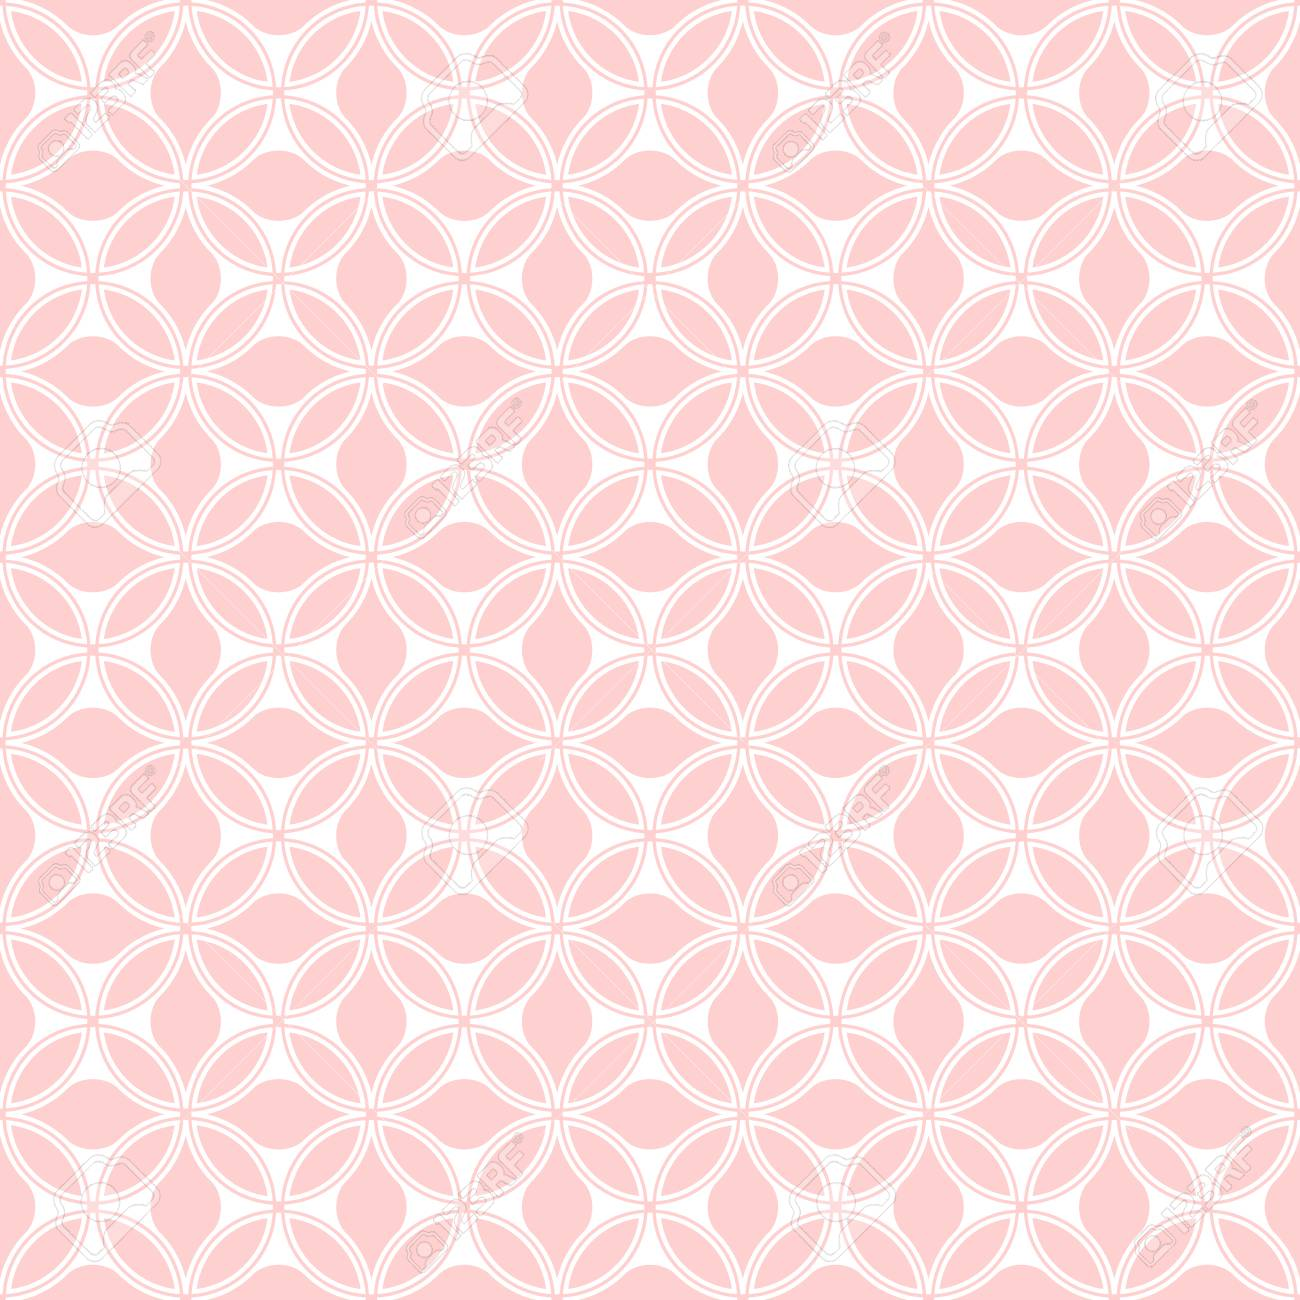 Floral pattern. Wallpaper seamless vector background. Pink and white ornament. Graphic modern pattern